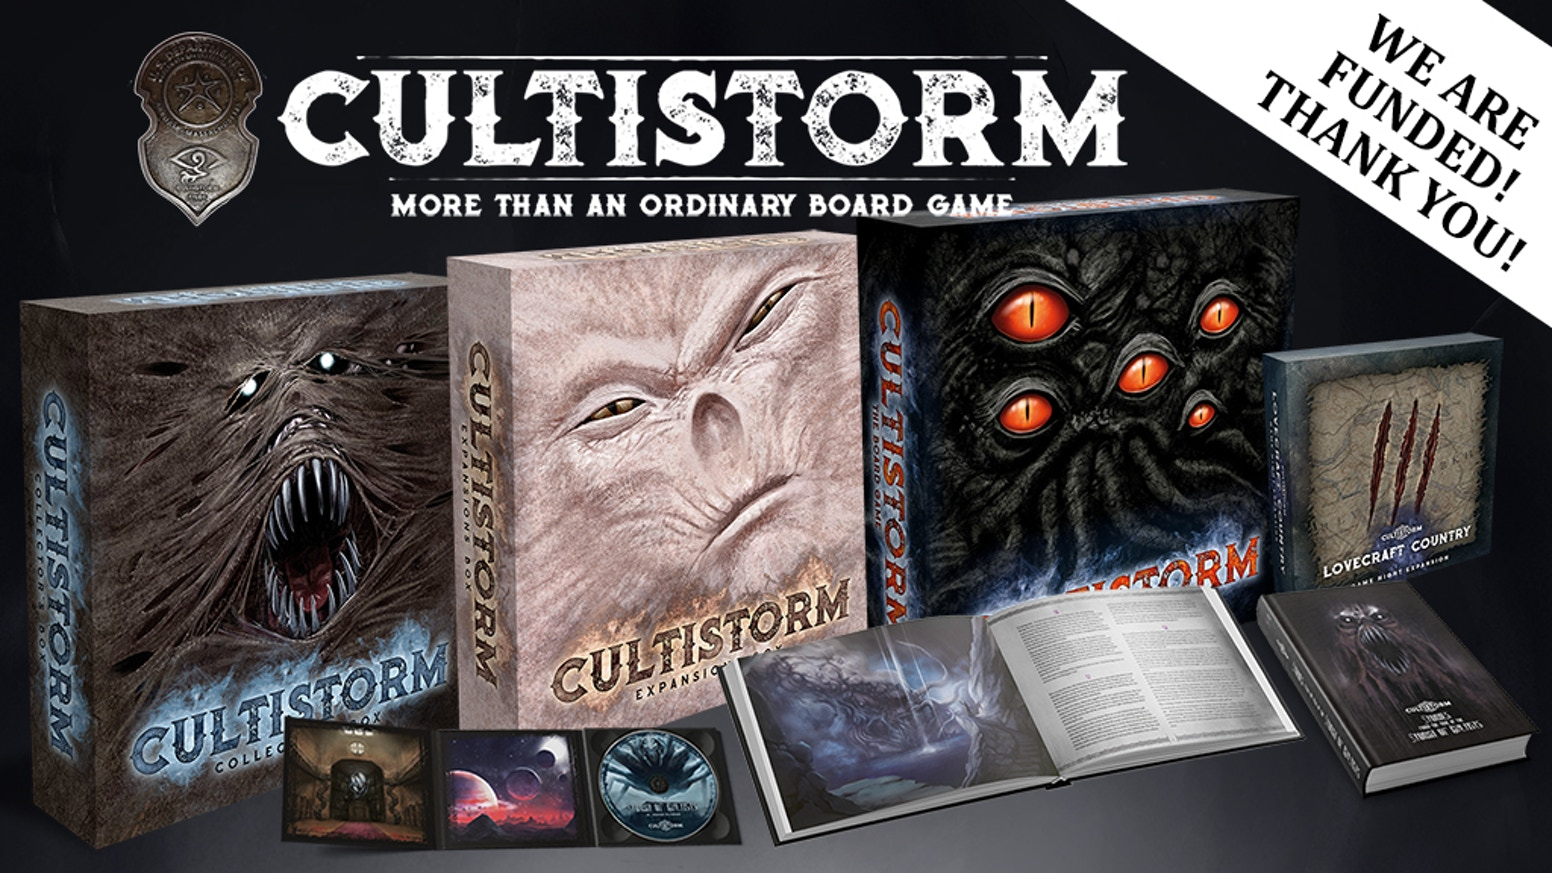 A Lovecraftian gaming experience with 14 expansions, miniatures, 500+ narrative stories, Short Story Collection and soundtrack by Graham Plowman